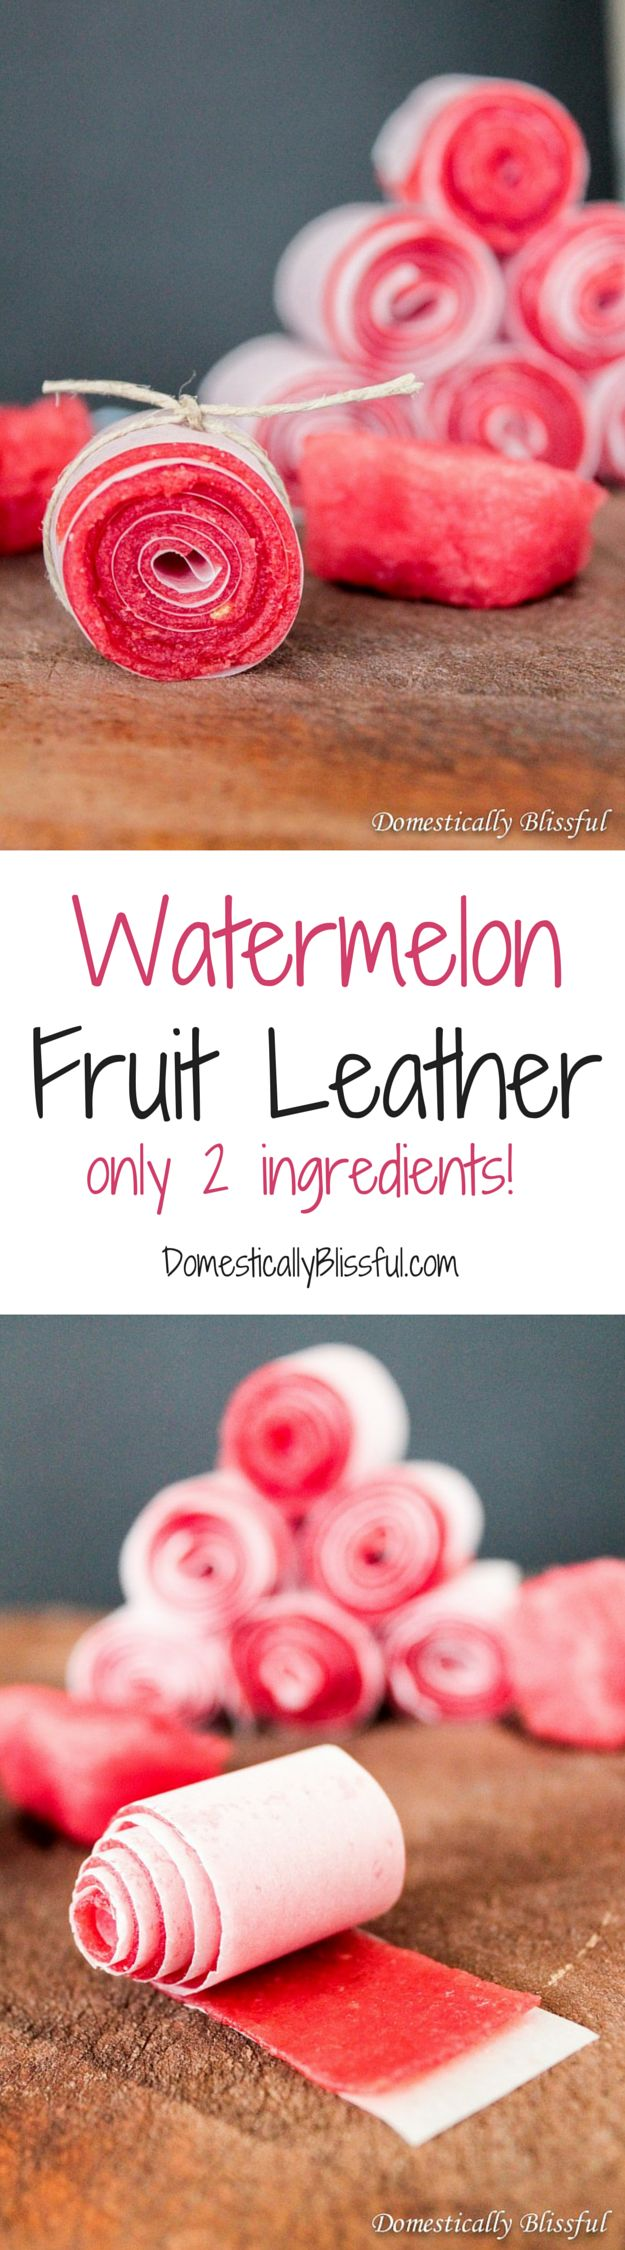 Watermelon Fruit Leathers are the perfect healthy treat this summer & you only need 2 ingredients!